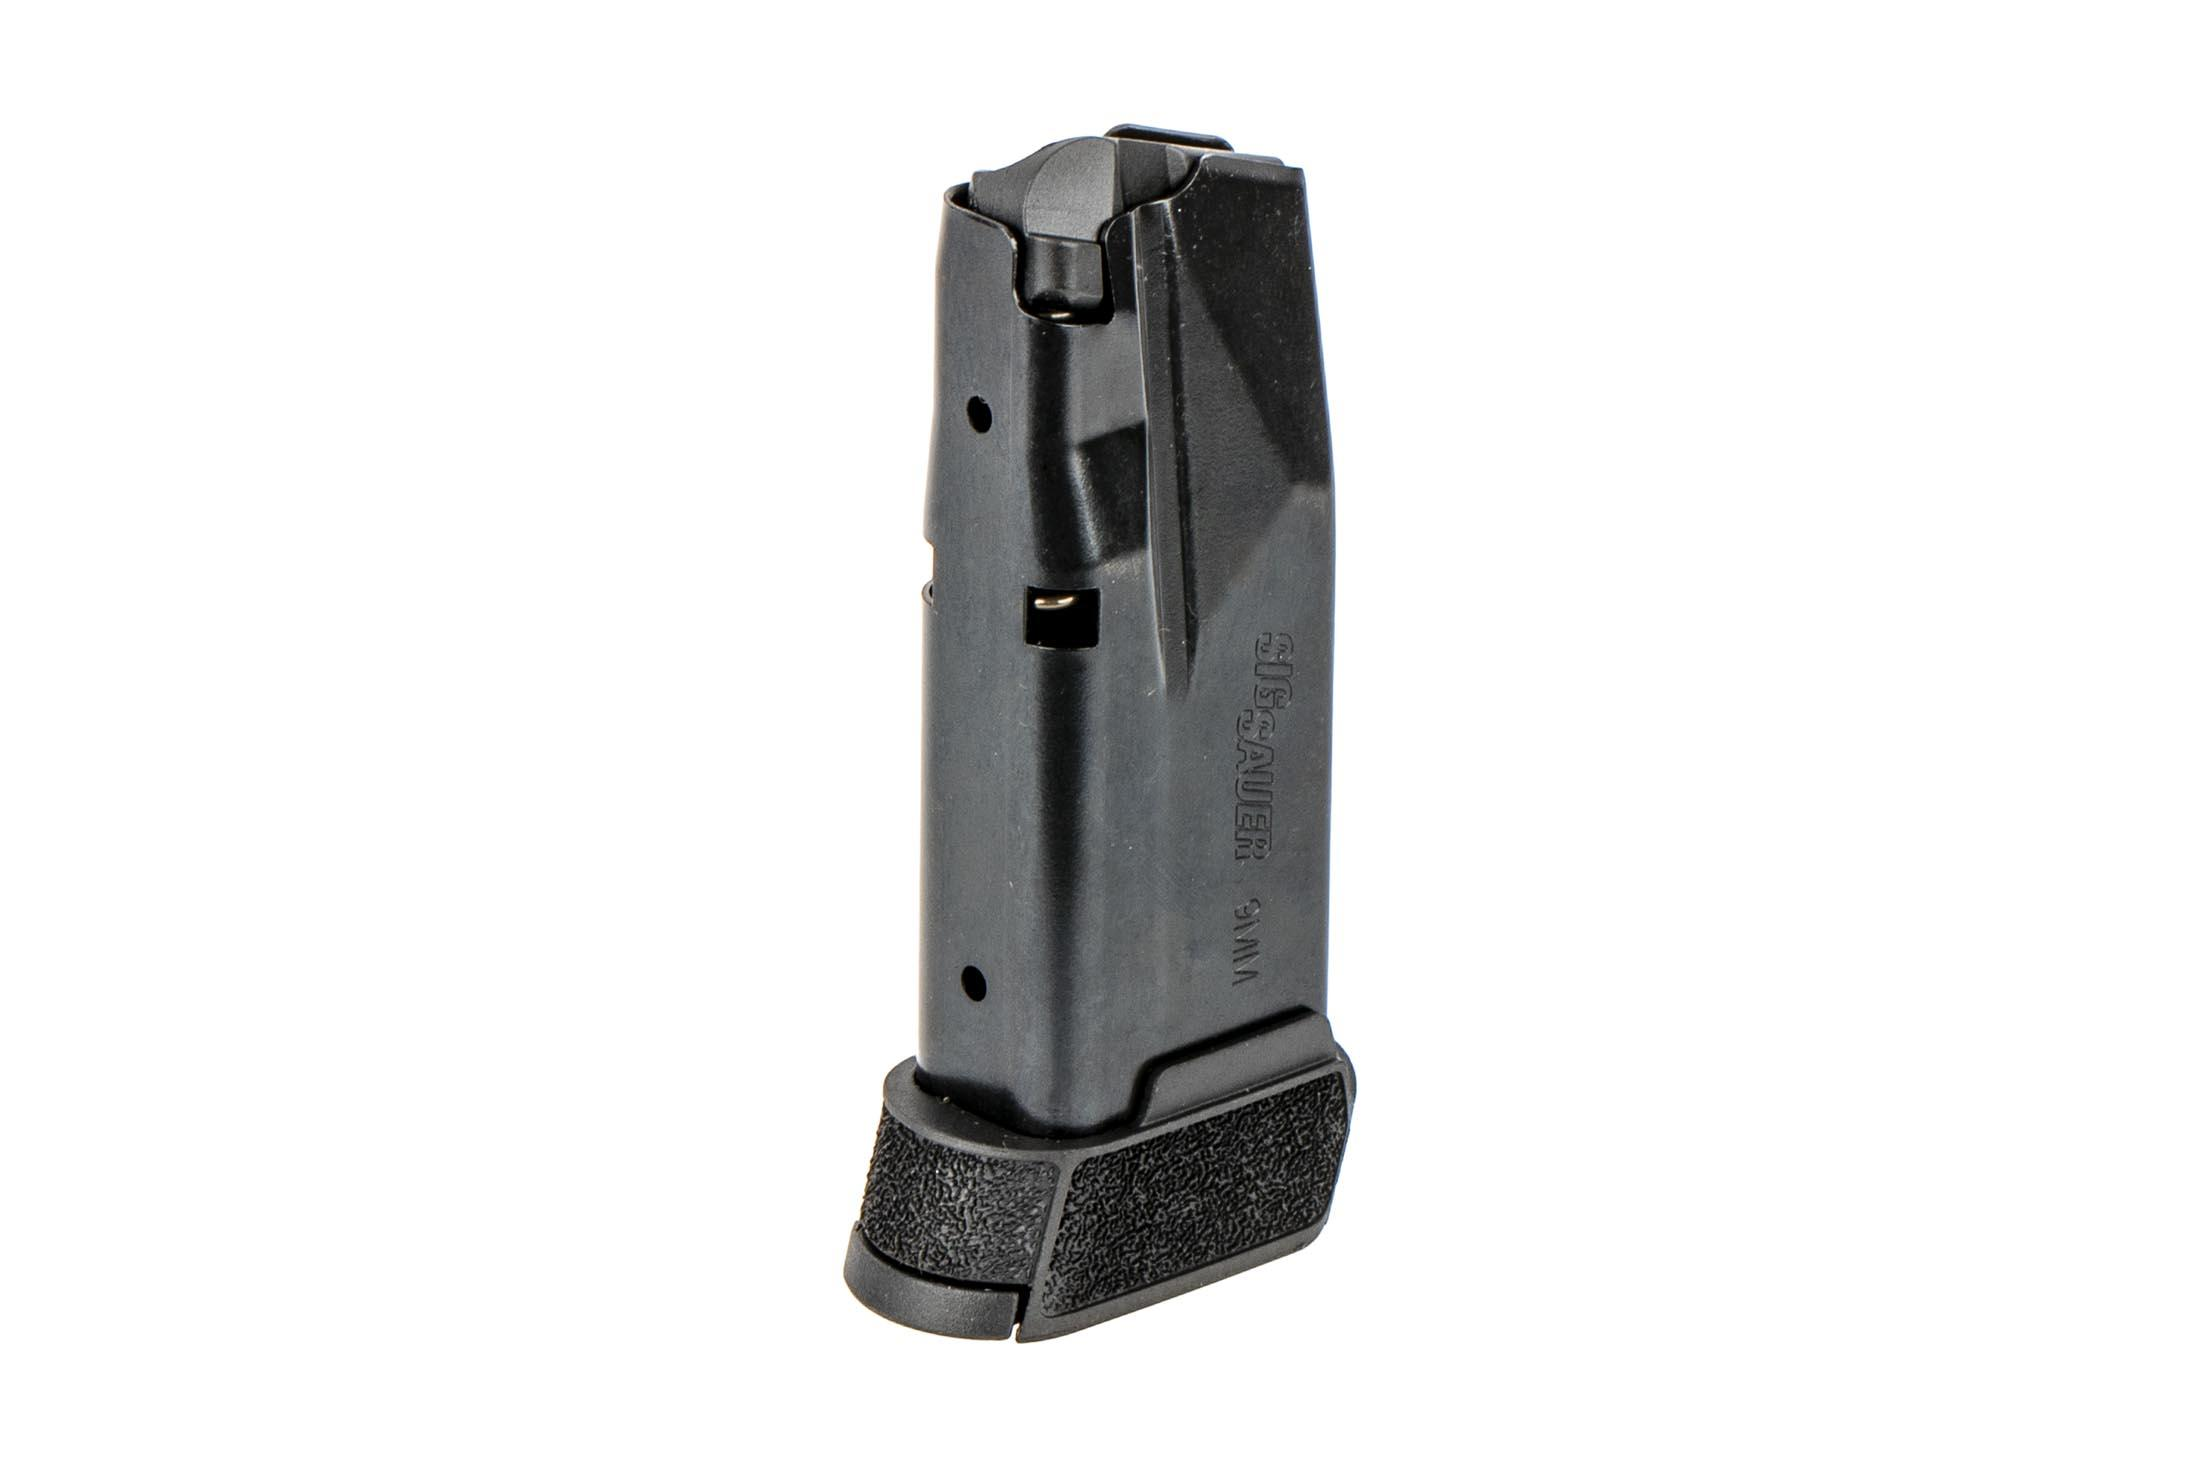 The Sig Sauer P365 Magazine holds 12 rounds of 9mm ammunition